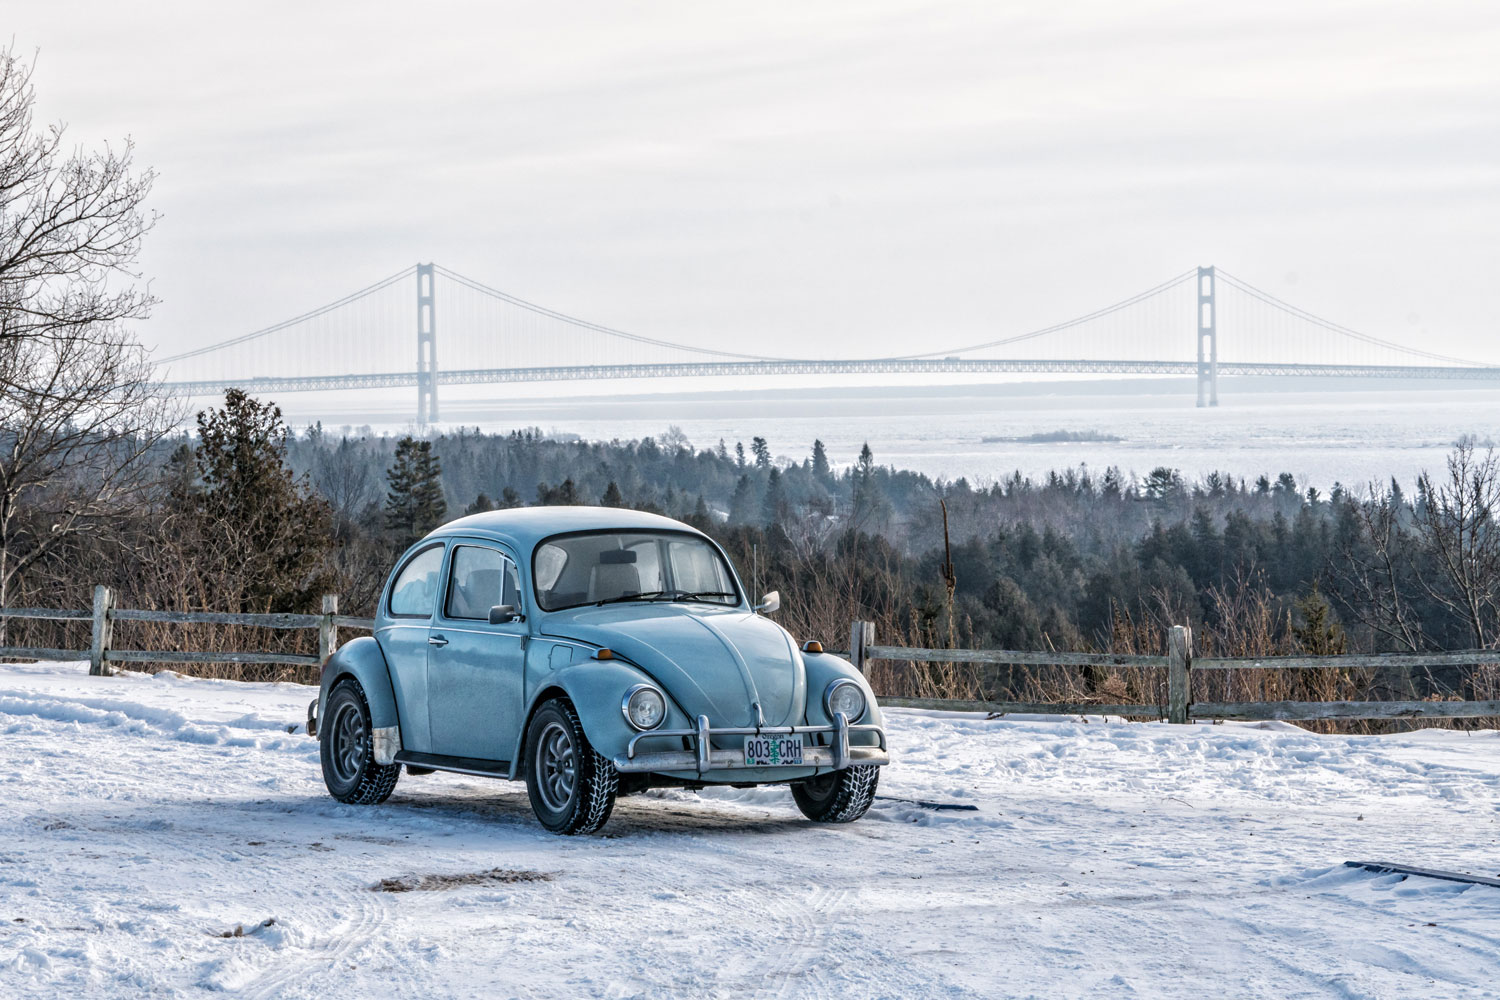 VW Beetle in front of the Mackinac Bridge